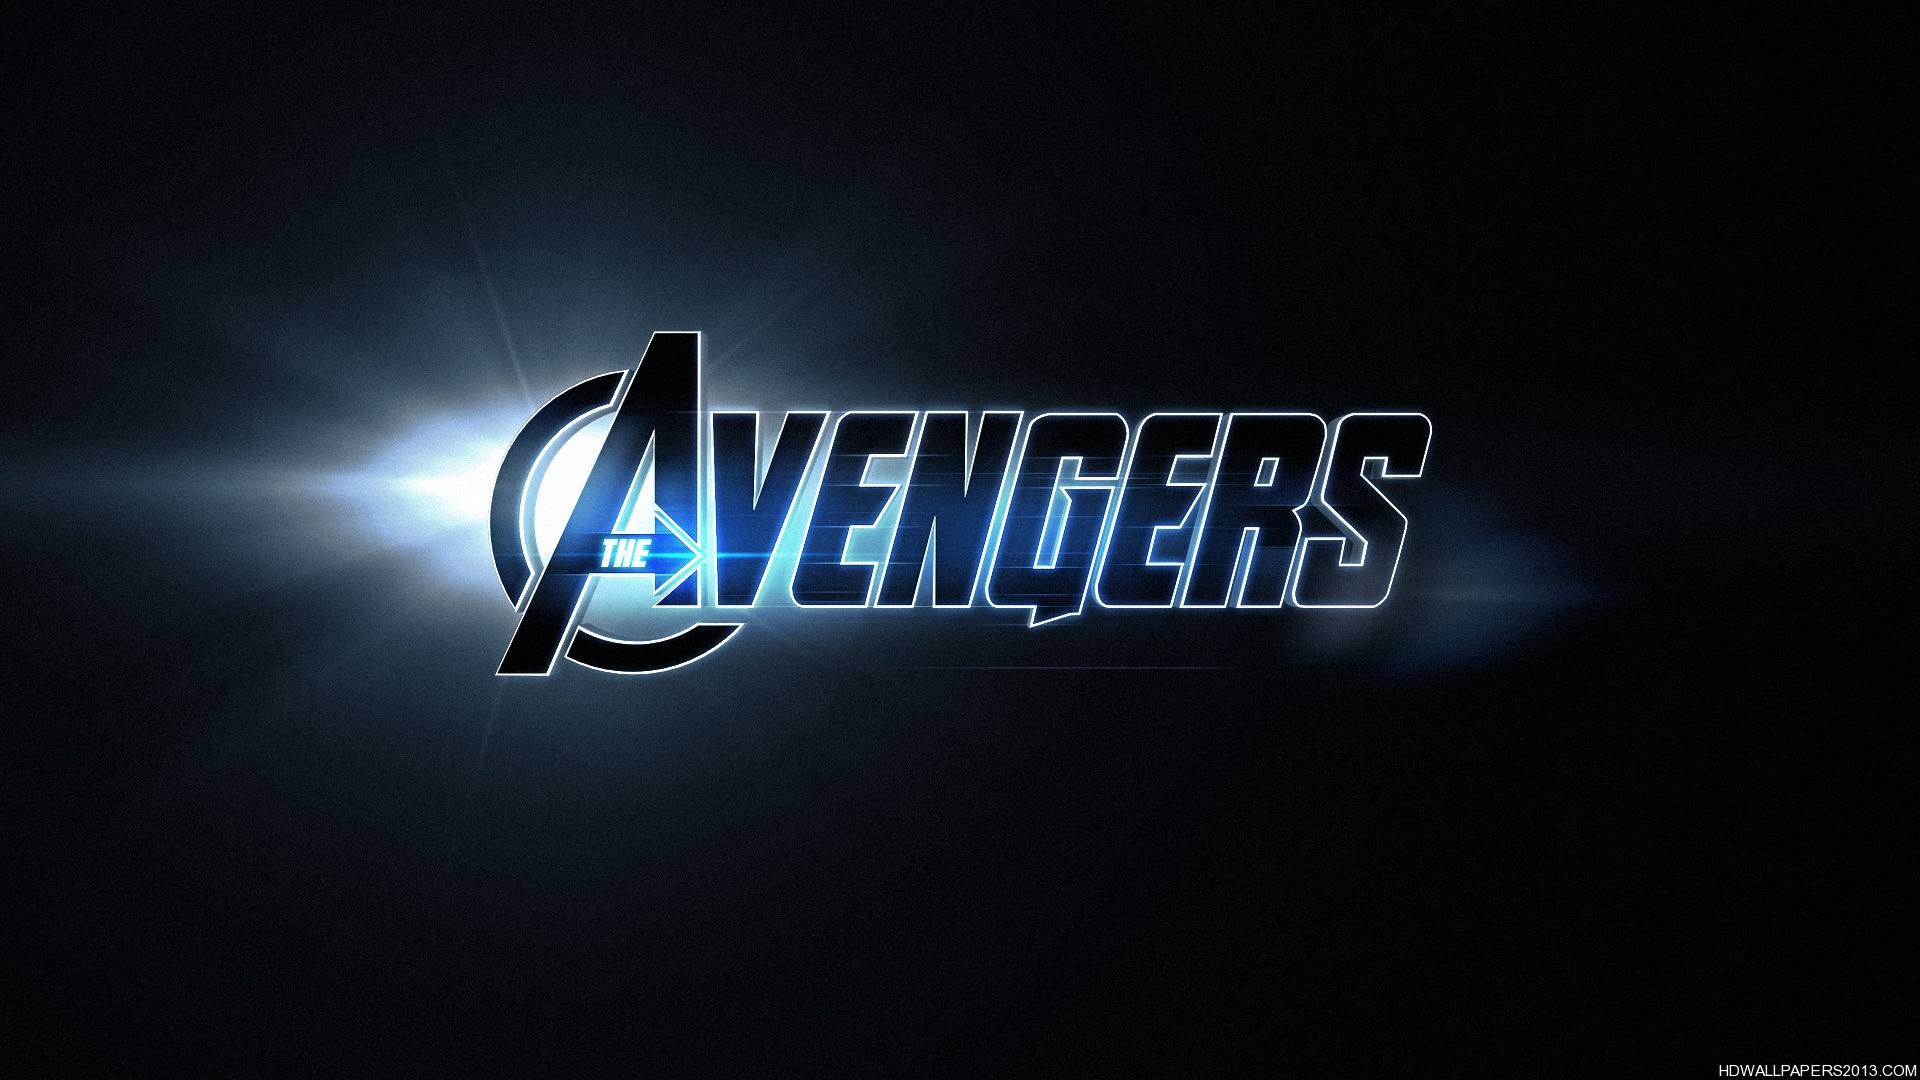 The-Avengers-Logo-Wallpaper.jpg